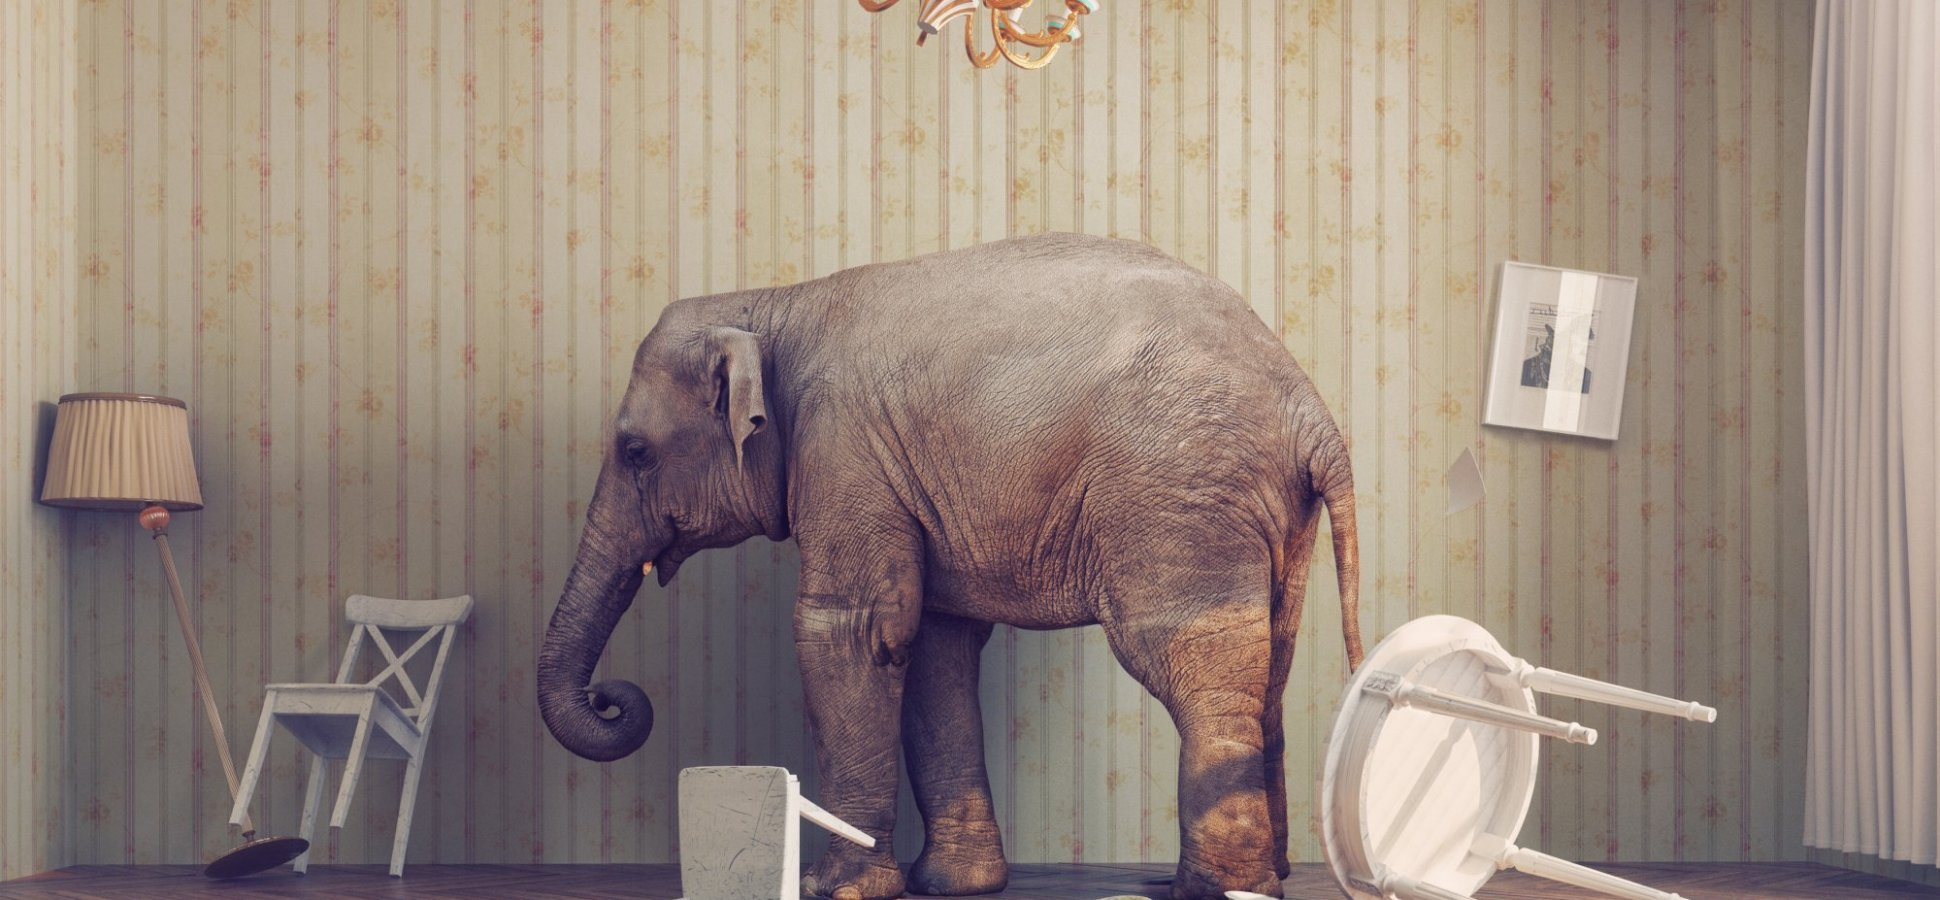 How to Bring Up the Elephant in the Room Without Losing Your Courage (or Your Job)